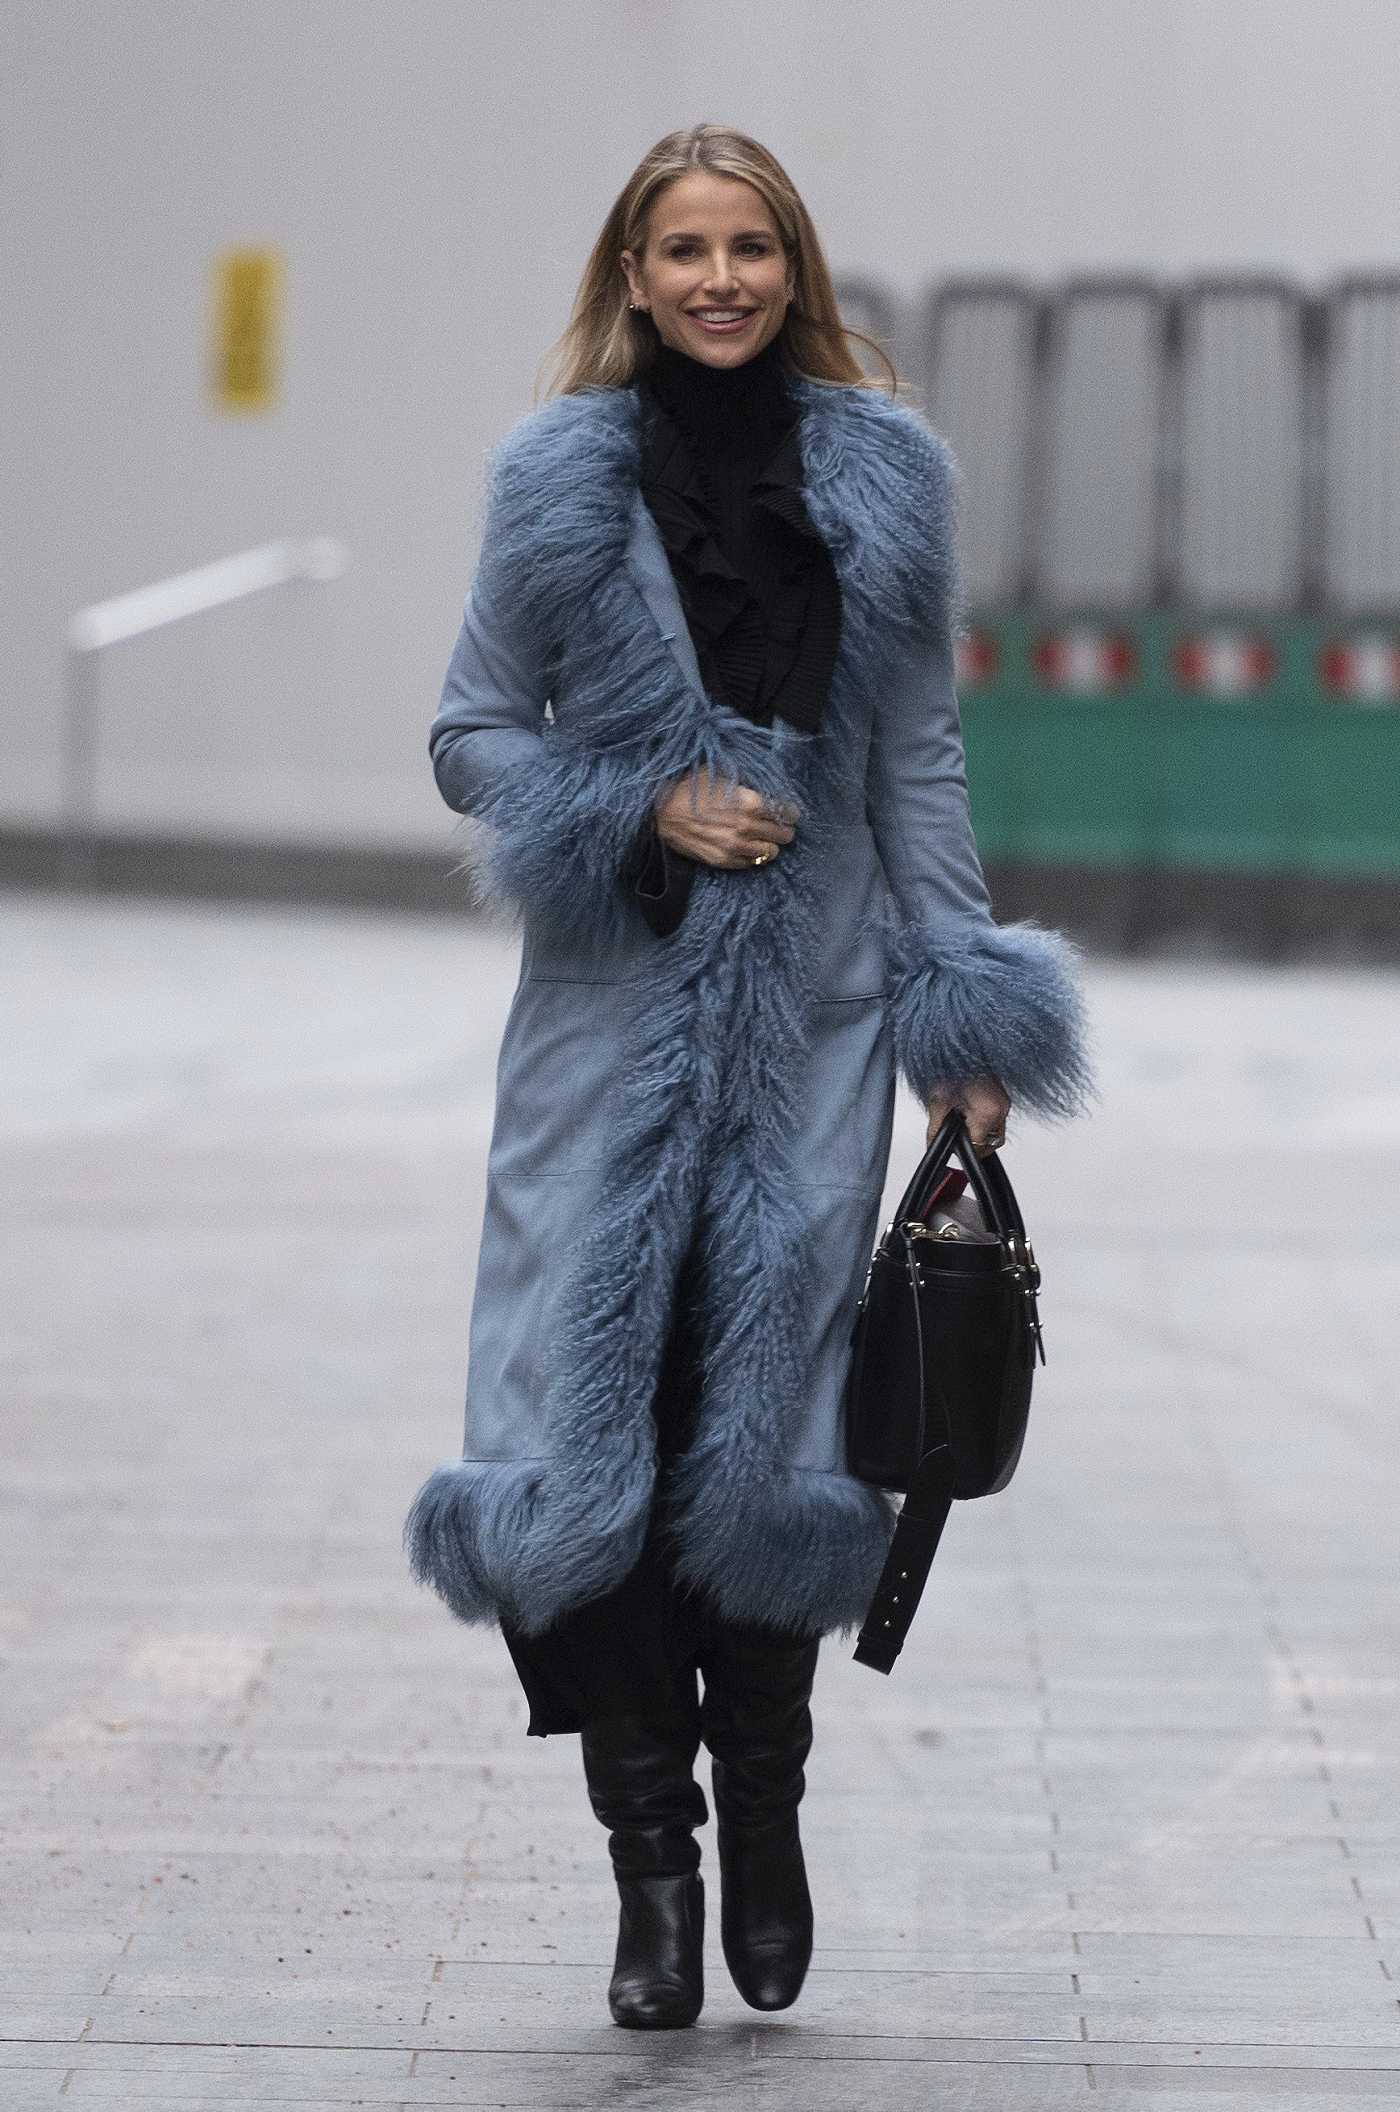 Vogue Williams in a Blue Coat Leaves the Global Radio in London 01/24/2021